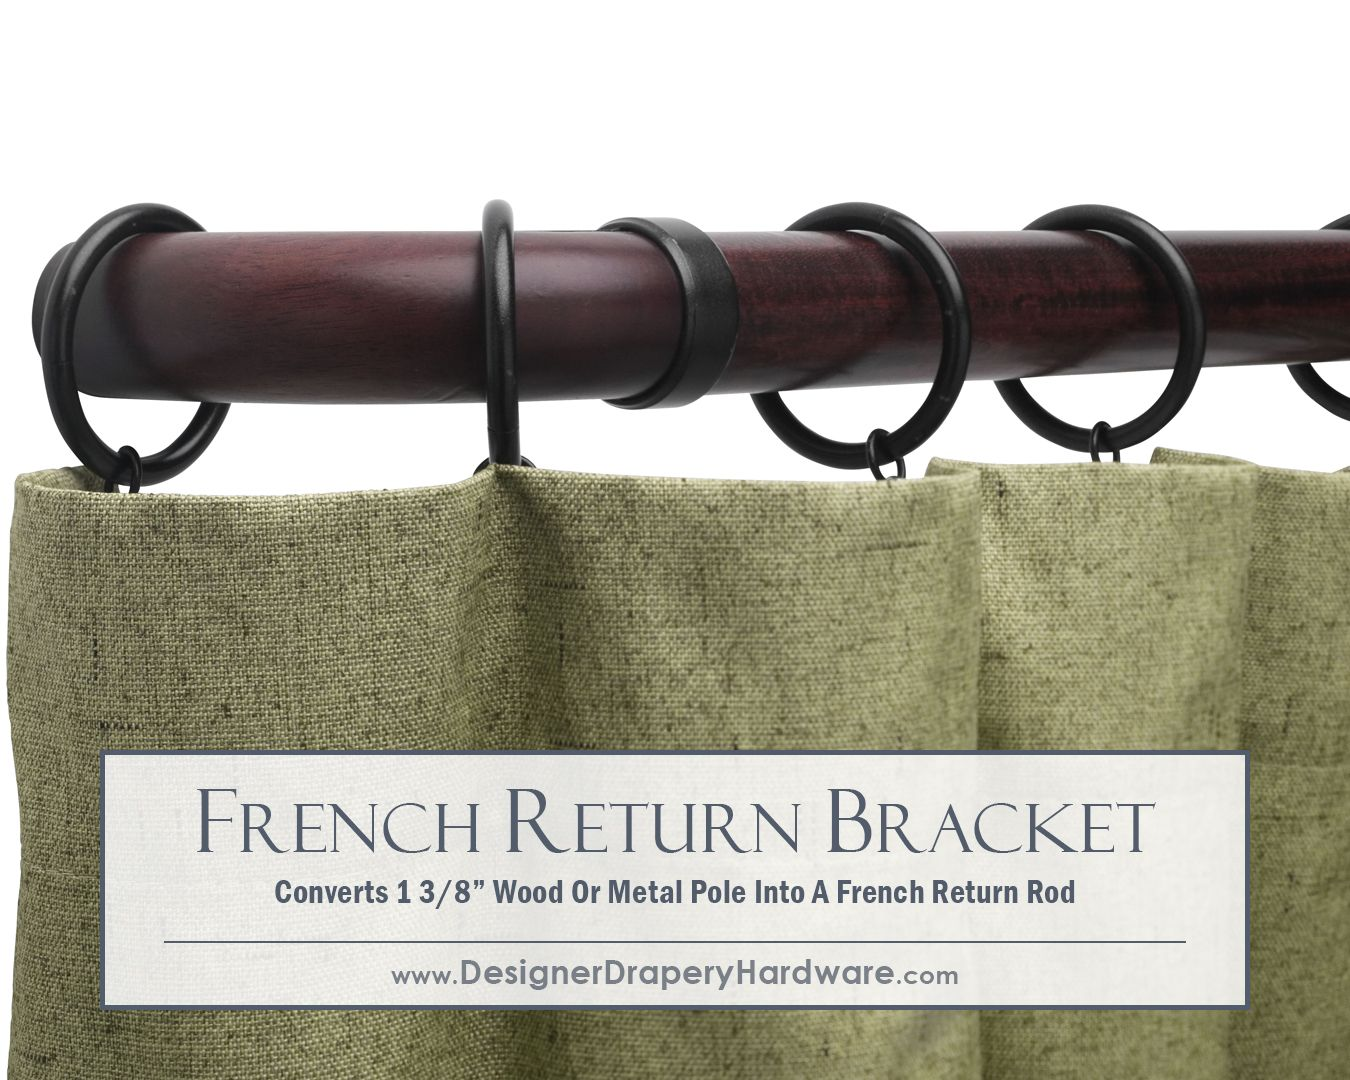 Wrought iron drapery rods - Twisted Wrought Iron Curtain Rods Wooden Twisted Curtain Rods Easily Convert A Wood Or Metal